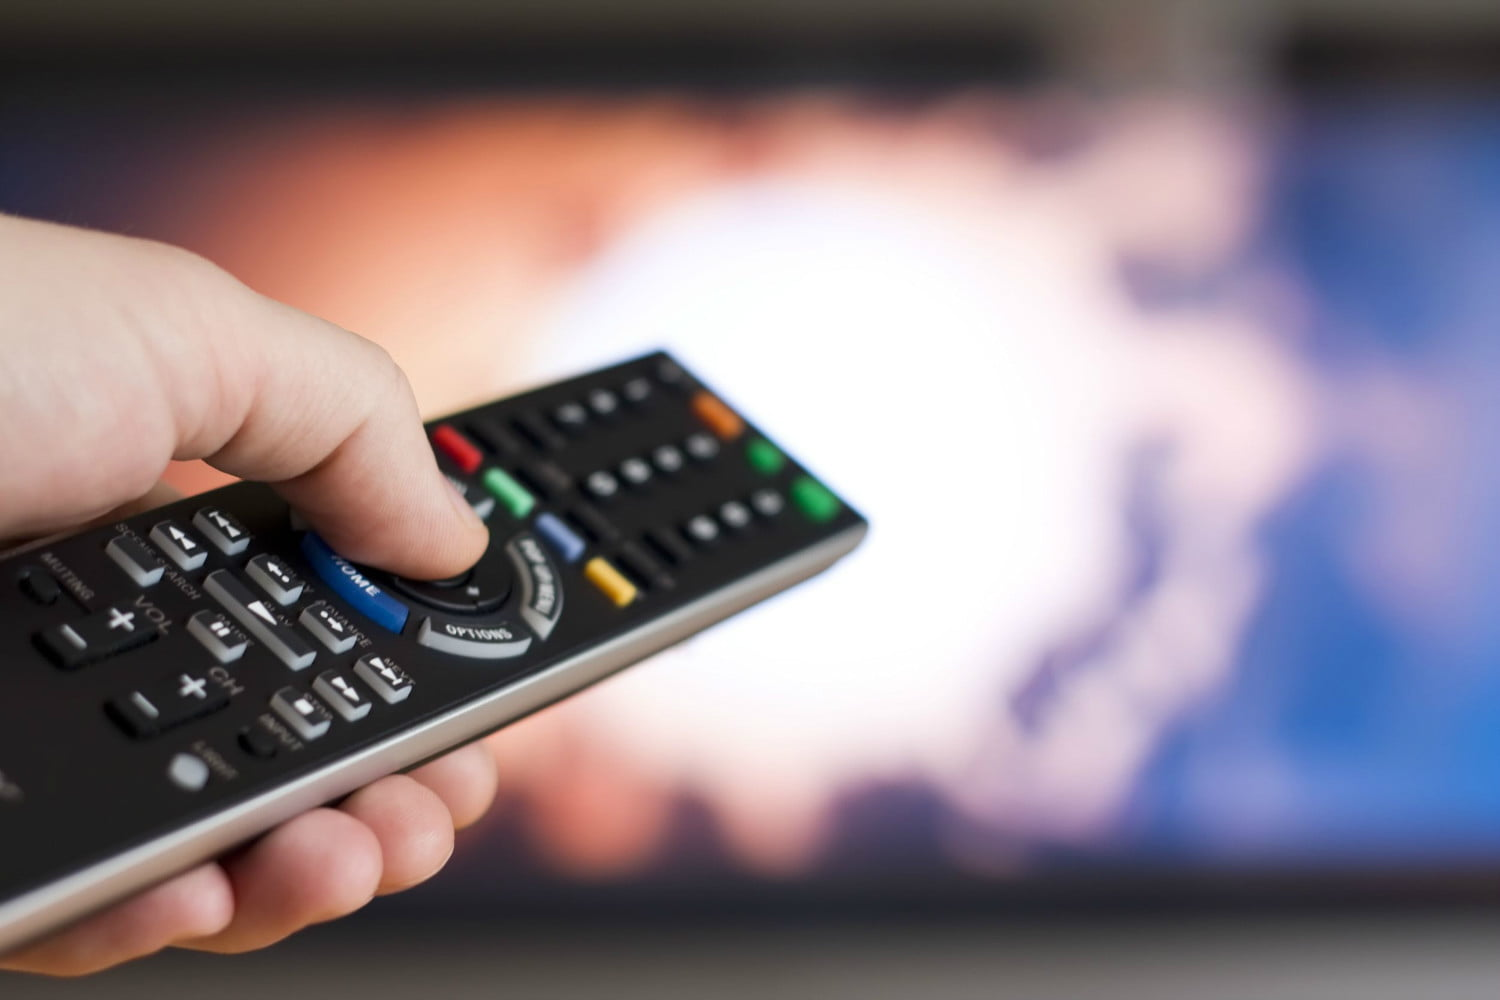 Spectrum TV Essentials Offers 60 Live TV Channels for $15 a Month